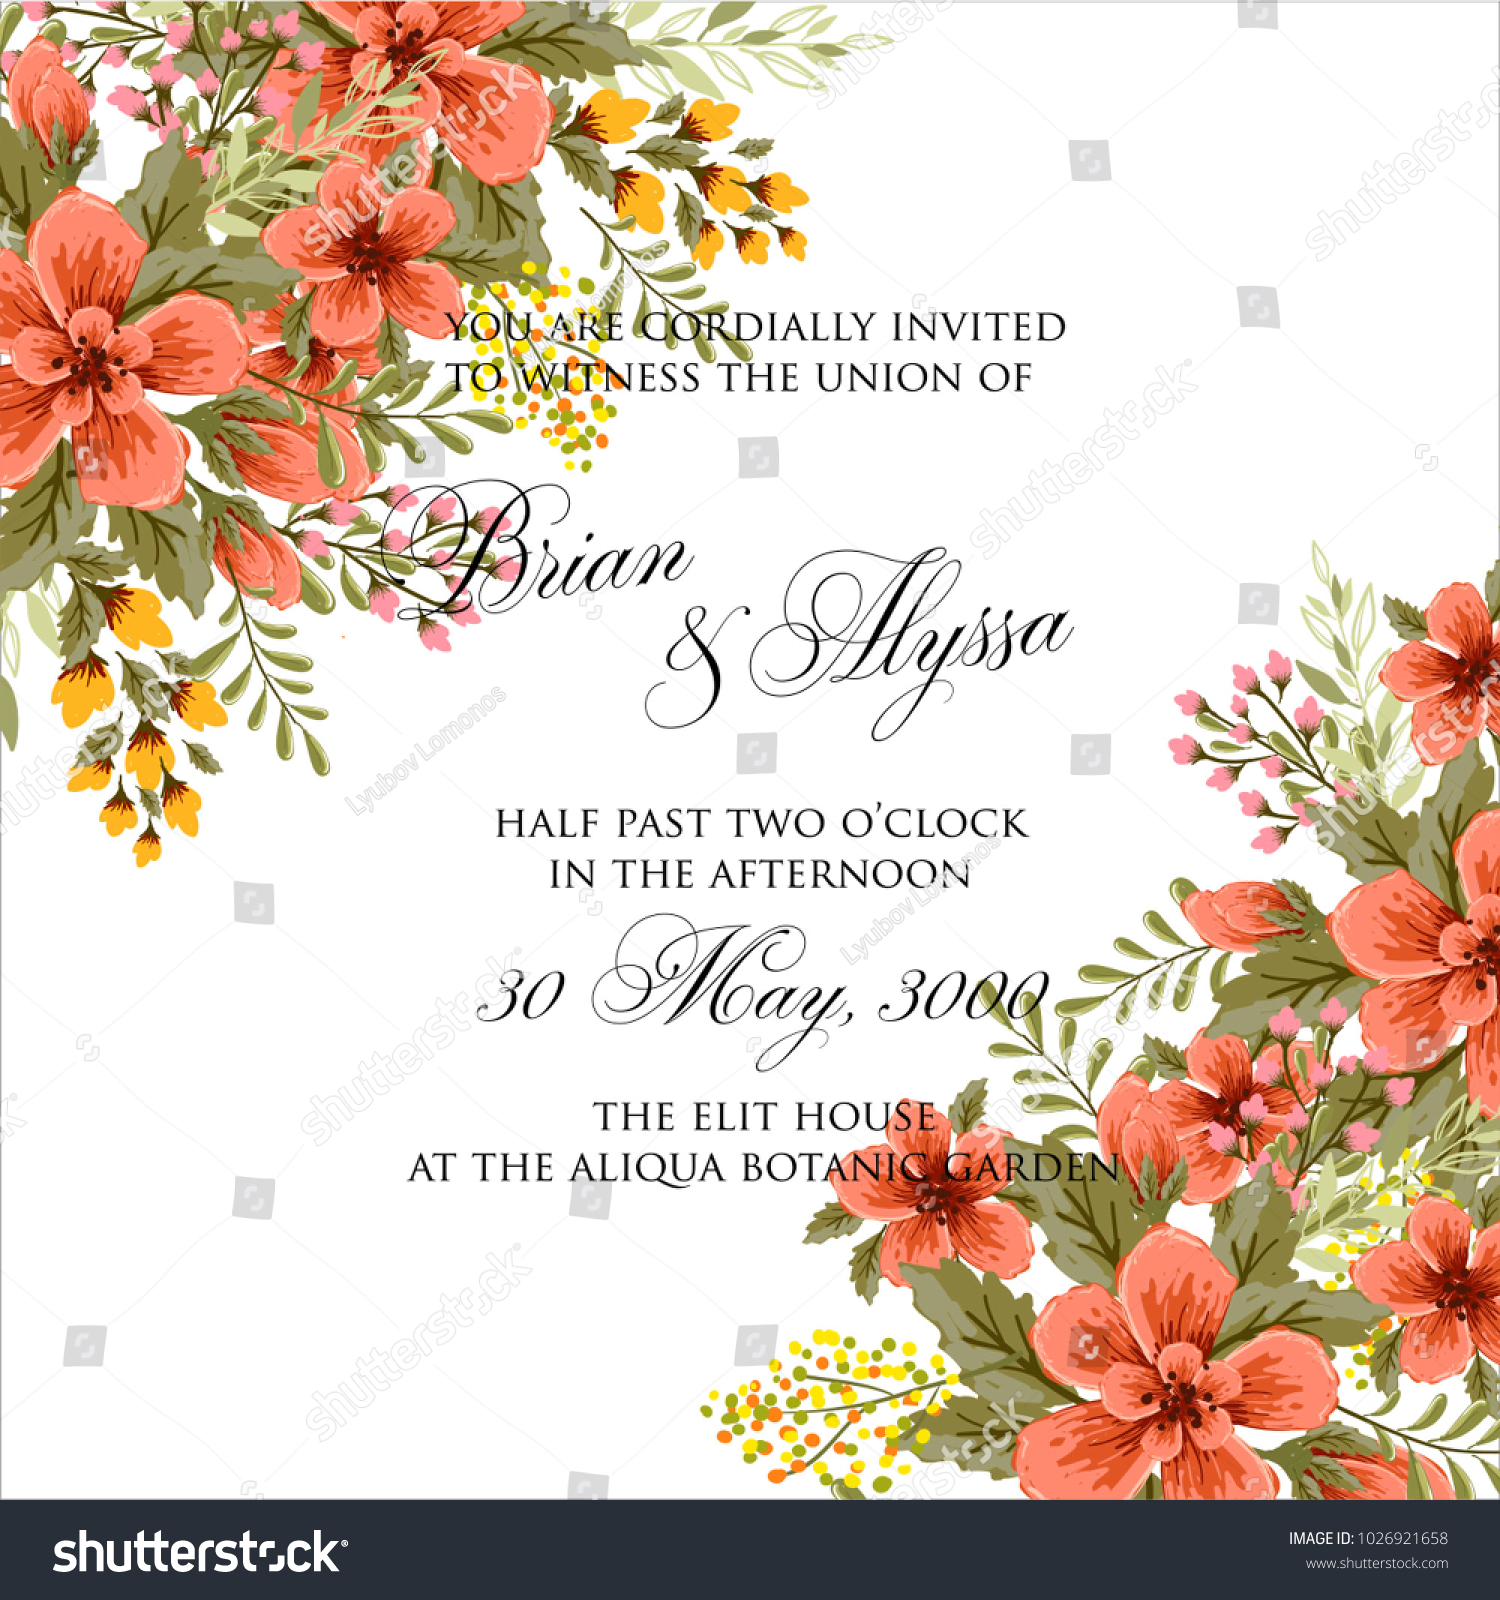 Marriage invitation card pink flowers wedding stock vector marriage invitation card with pink flowers wedding floral vector template kristyandbryce Gallery